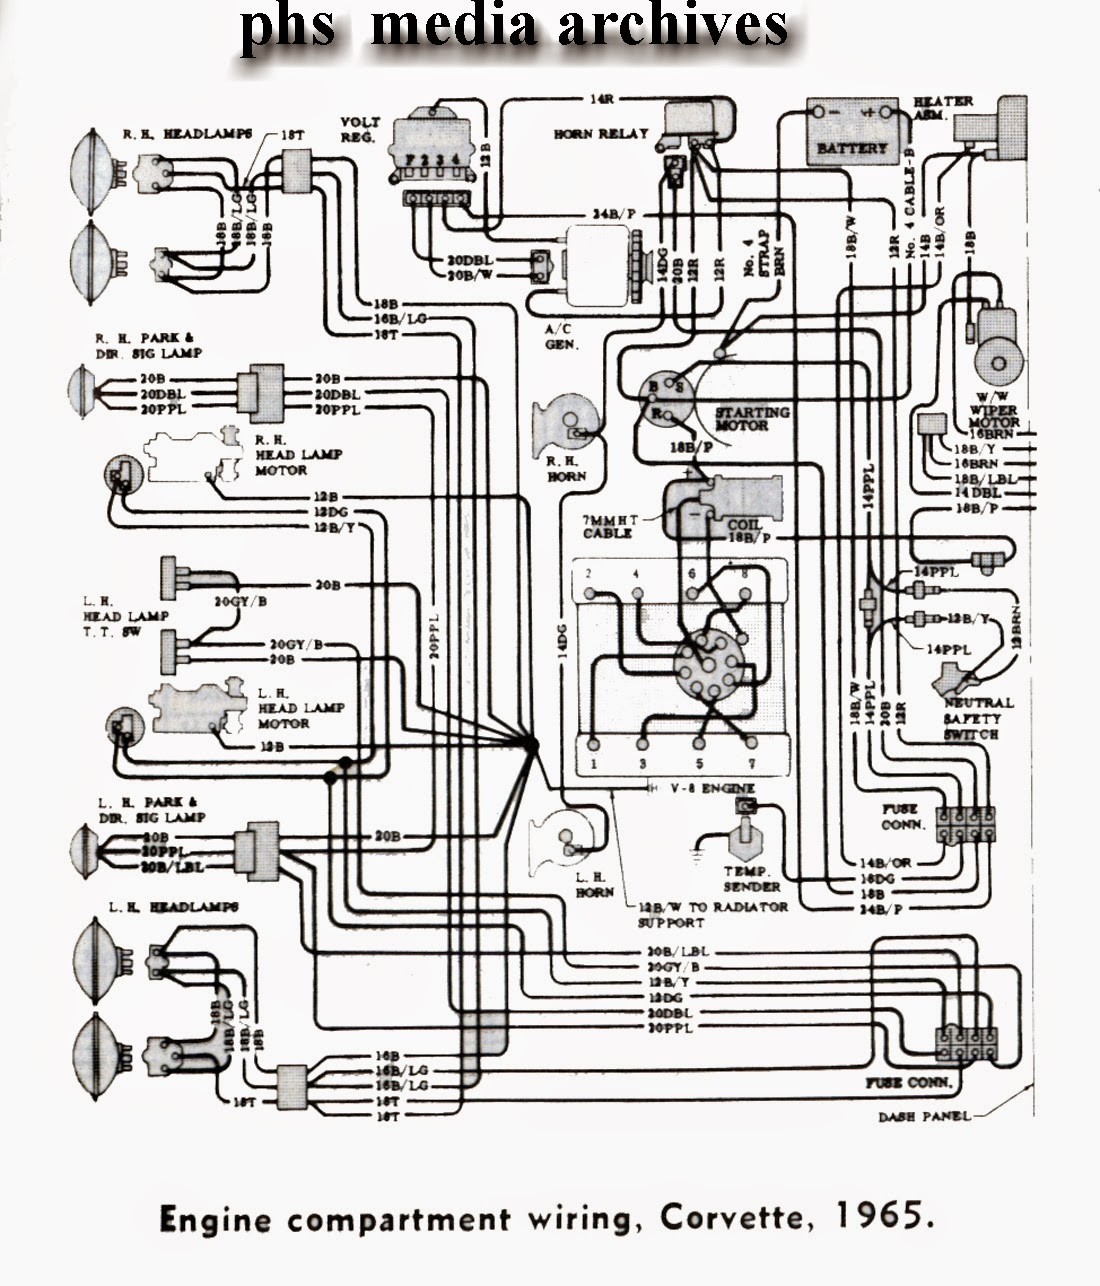 hight resolution of 1968 camaro fuse box wiring diagram trusted wiring diagrams rh chicagoitalianrestaurants com 65 chevy truck wiring